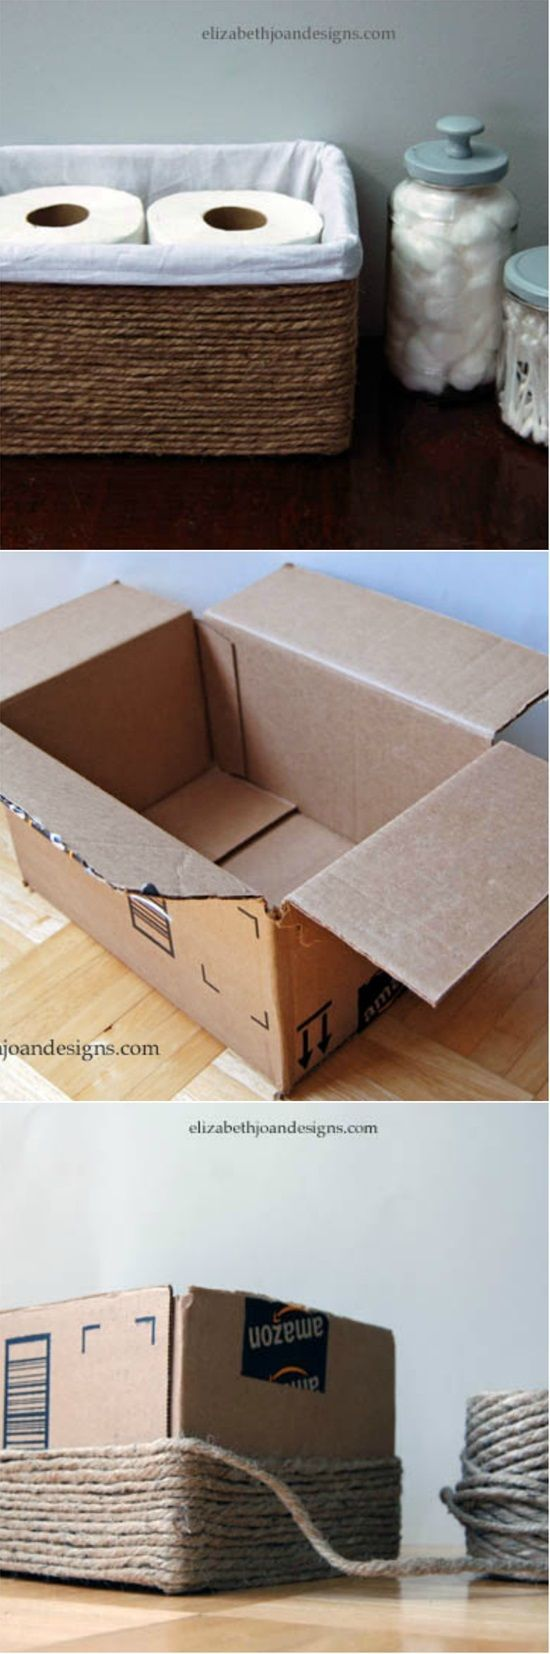 Best 25 diy box ideas on pinterest paper boxes diy for Easy home improvement projects